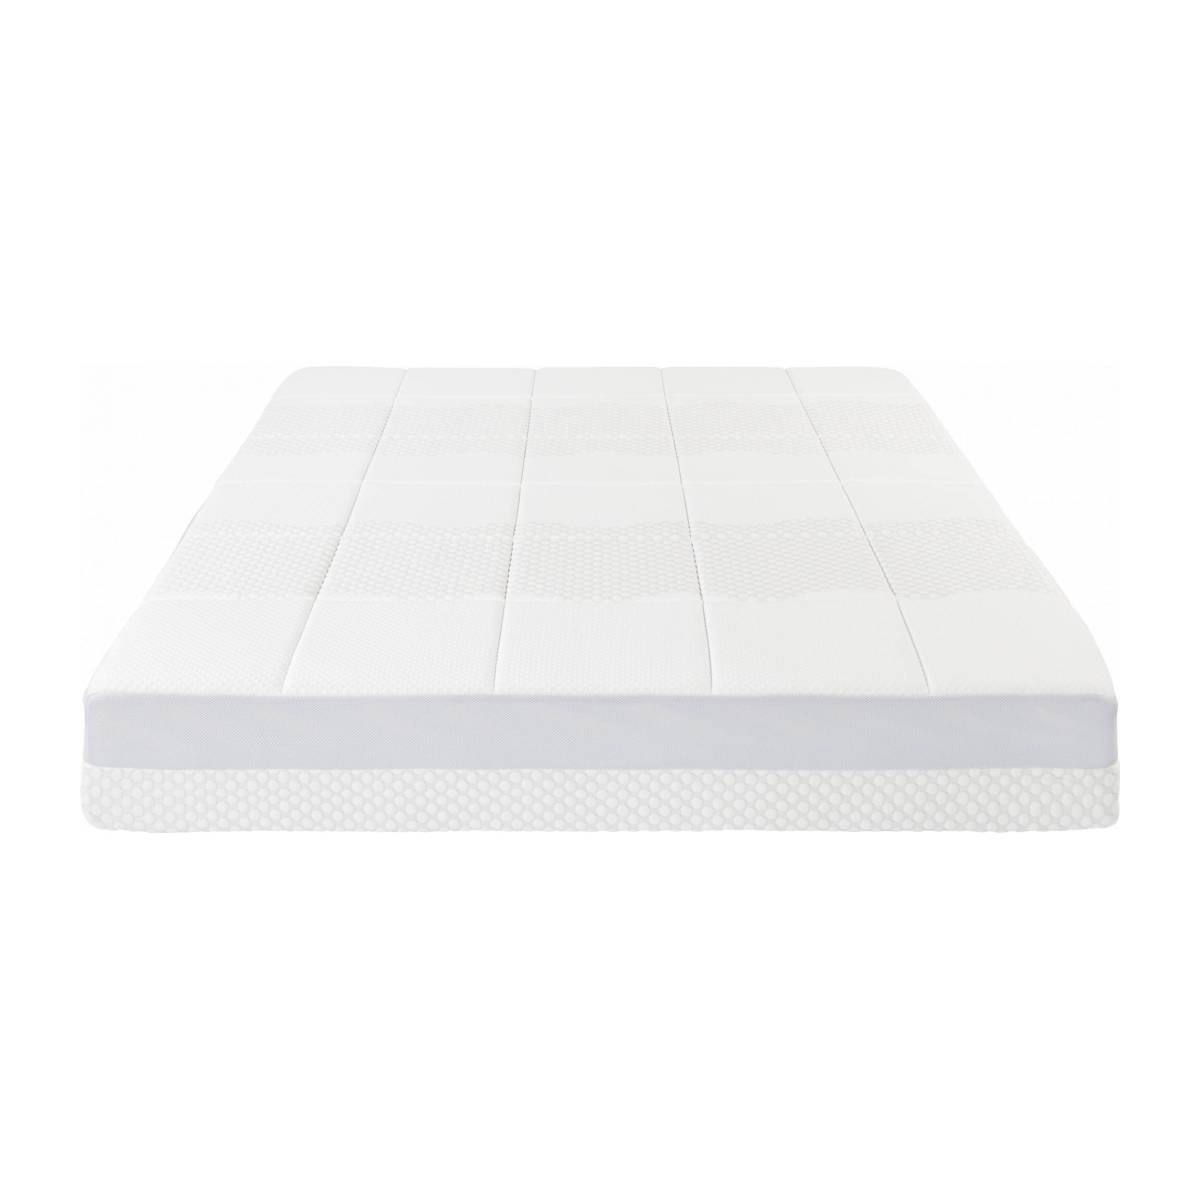 Foam mattress, width 24 cm, 180x200cm - firm support n°2